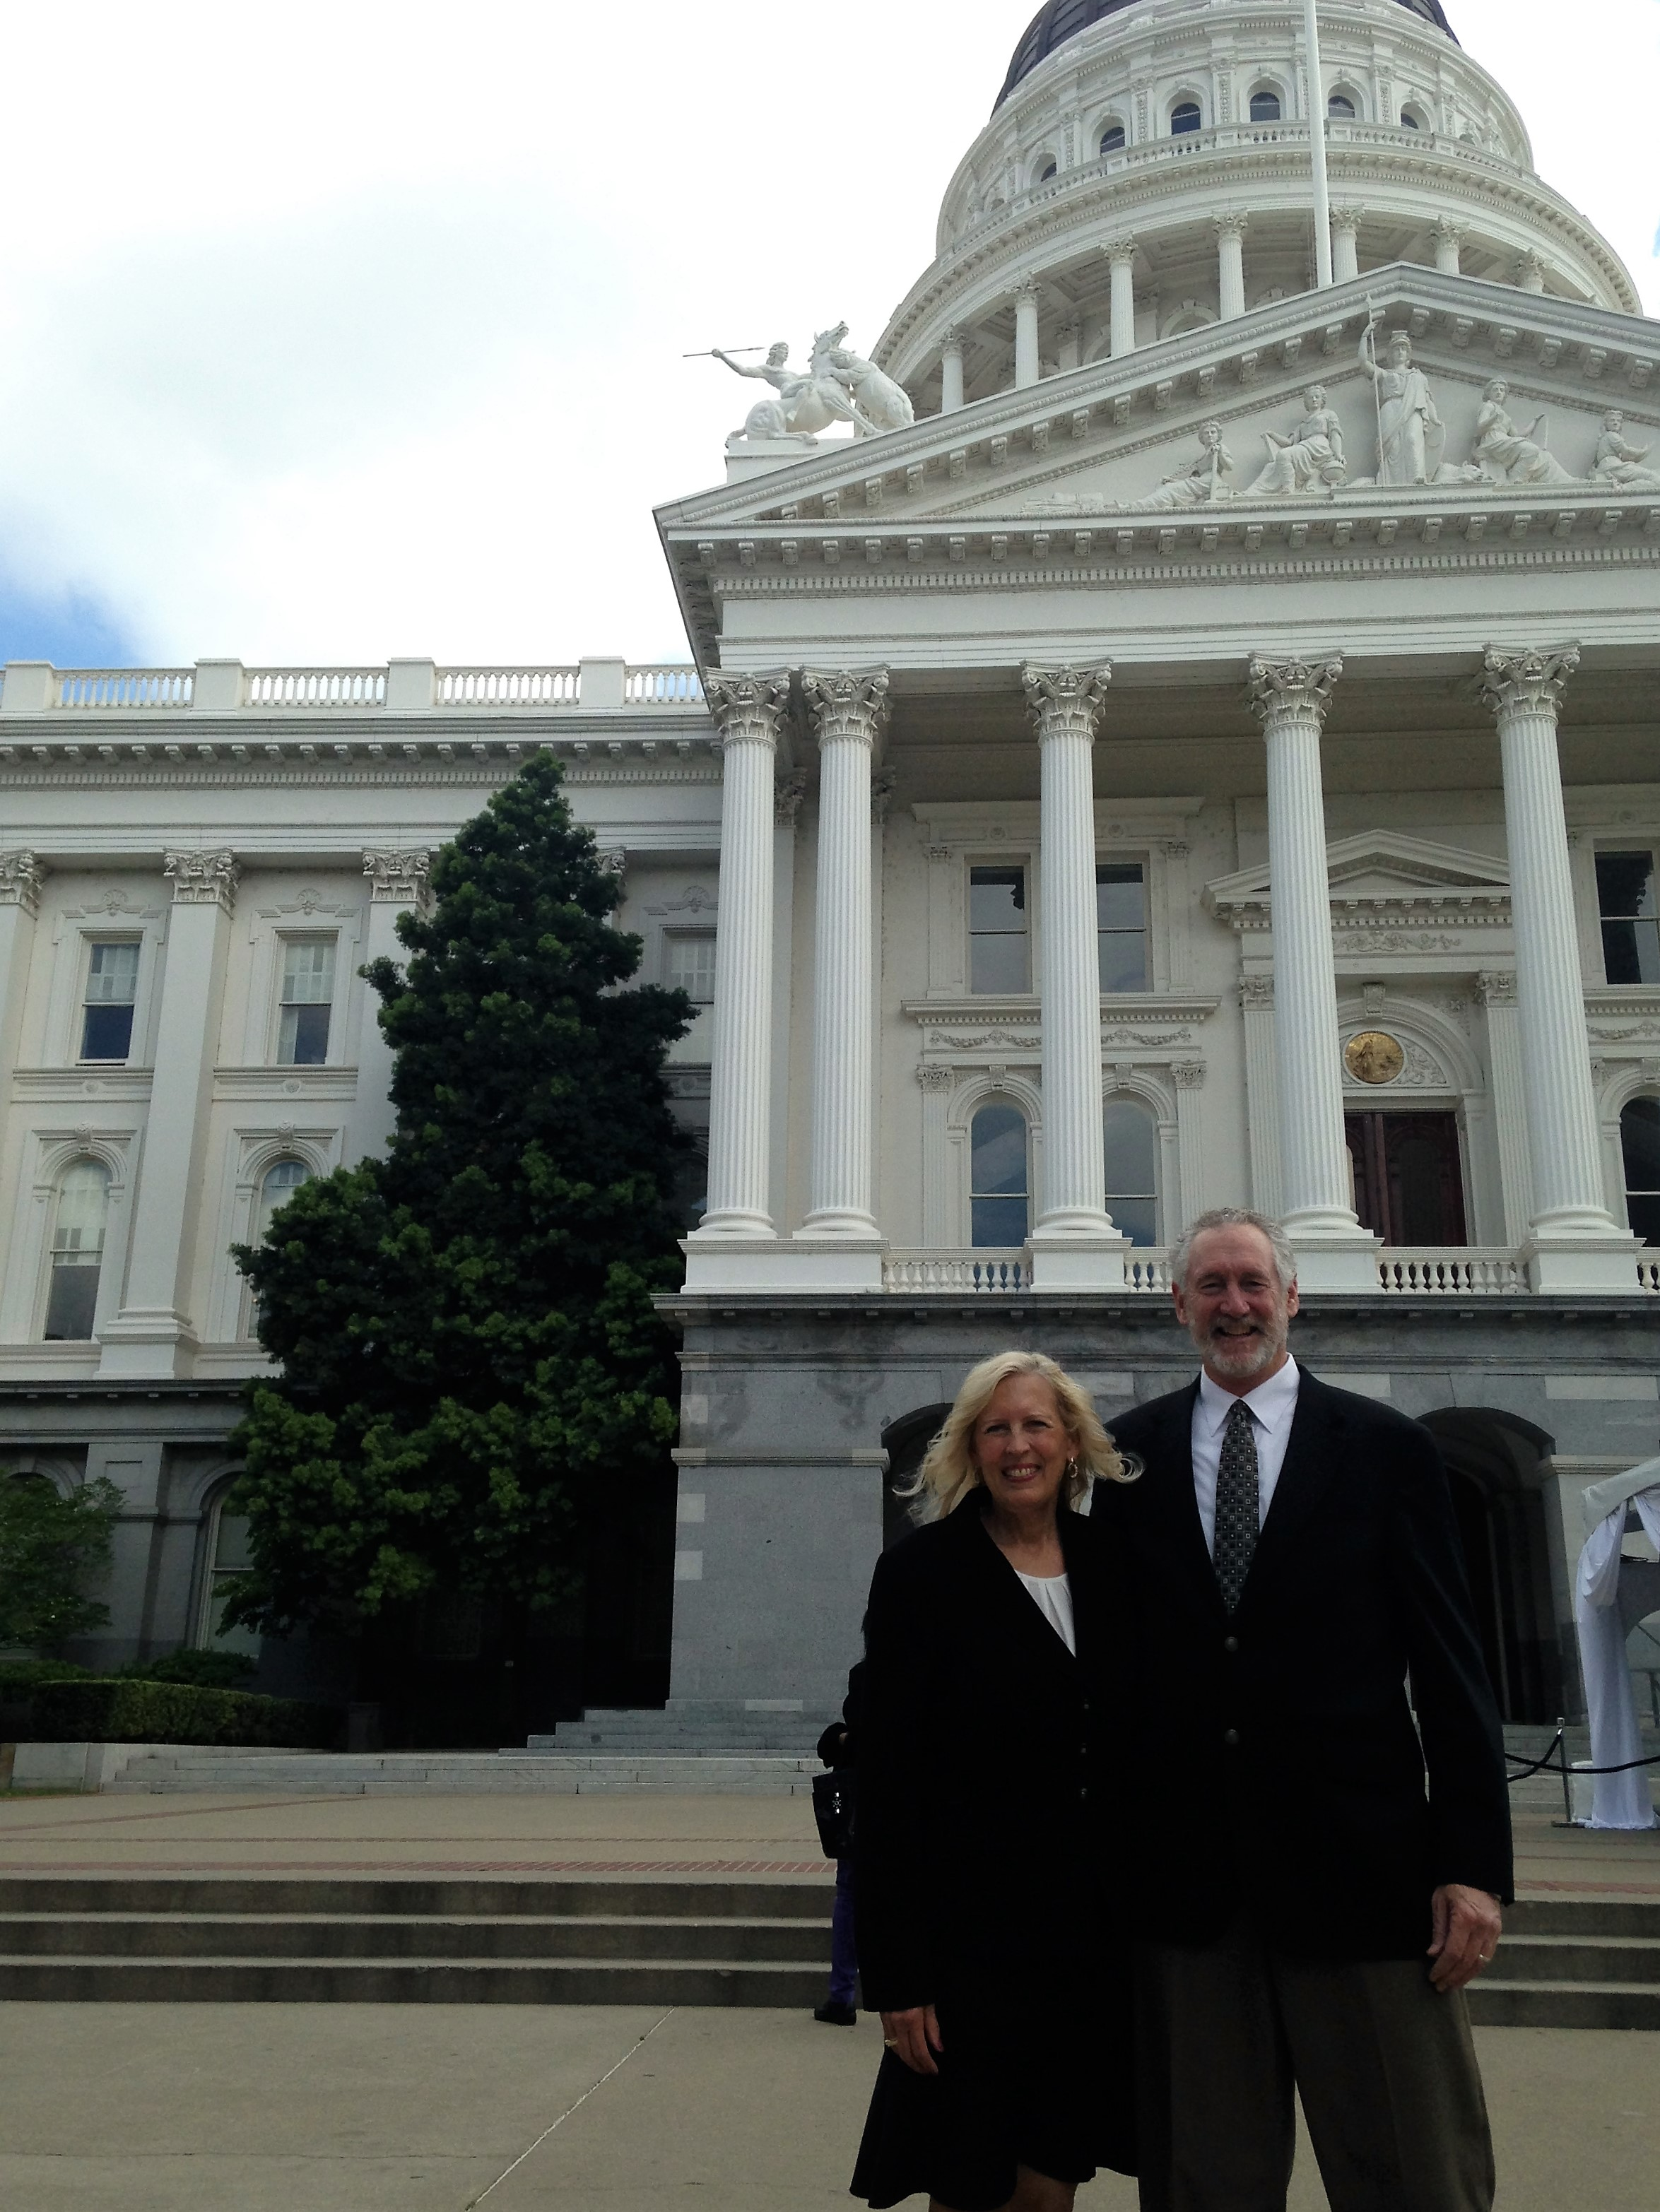 Jenelle and John Miller at the state Capitol building in Sacramento, California, April 11, 2016